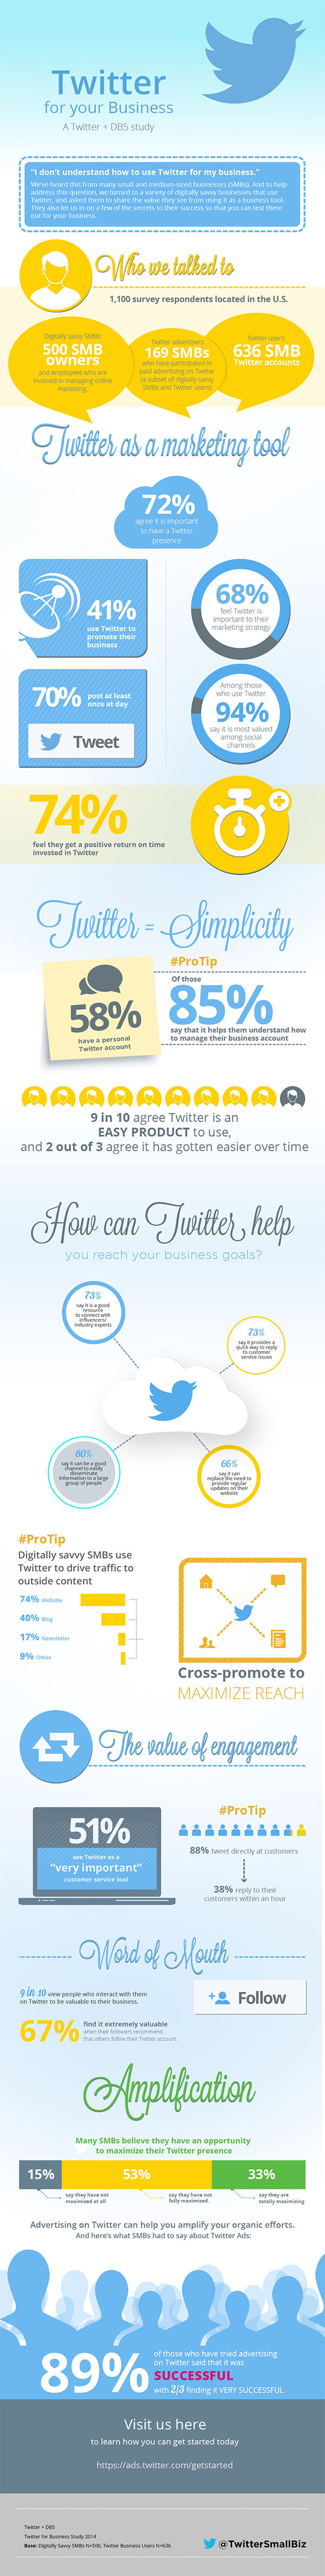 25 Astonishing Stats that Show Why Twitter MUST be Part of Your Marketing Strategy